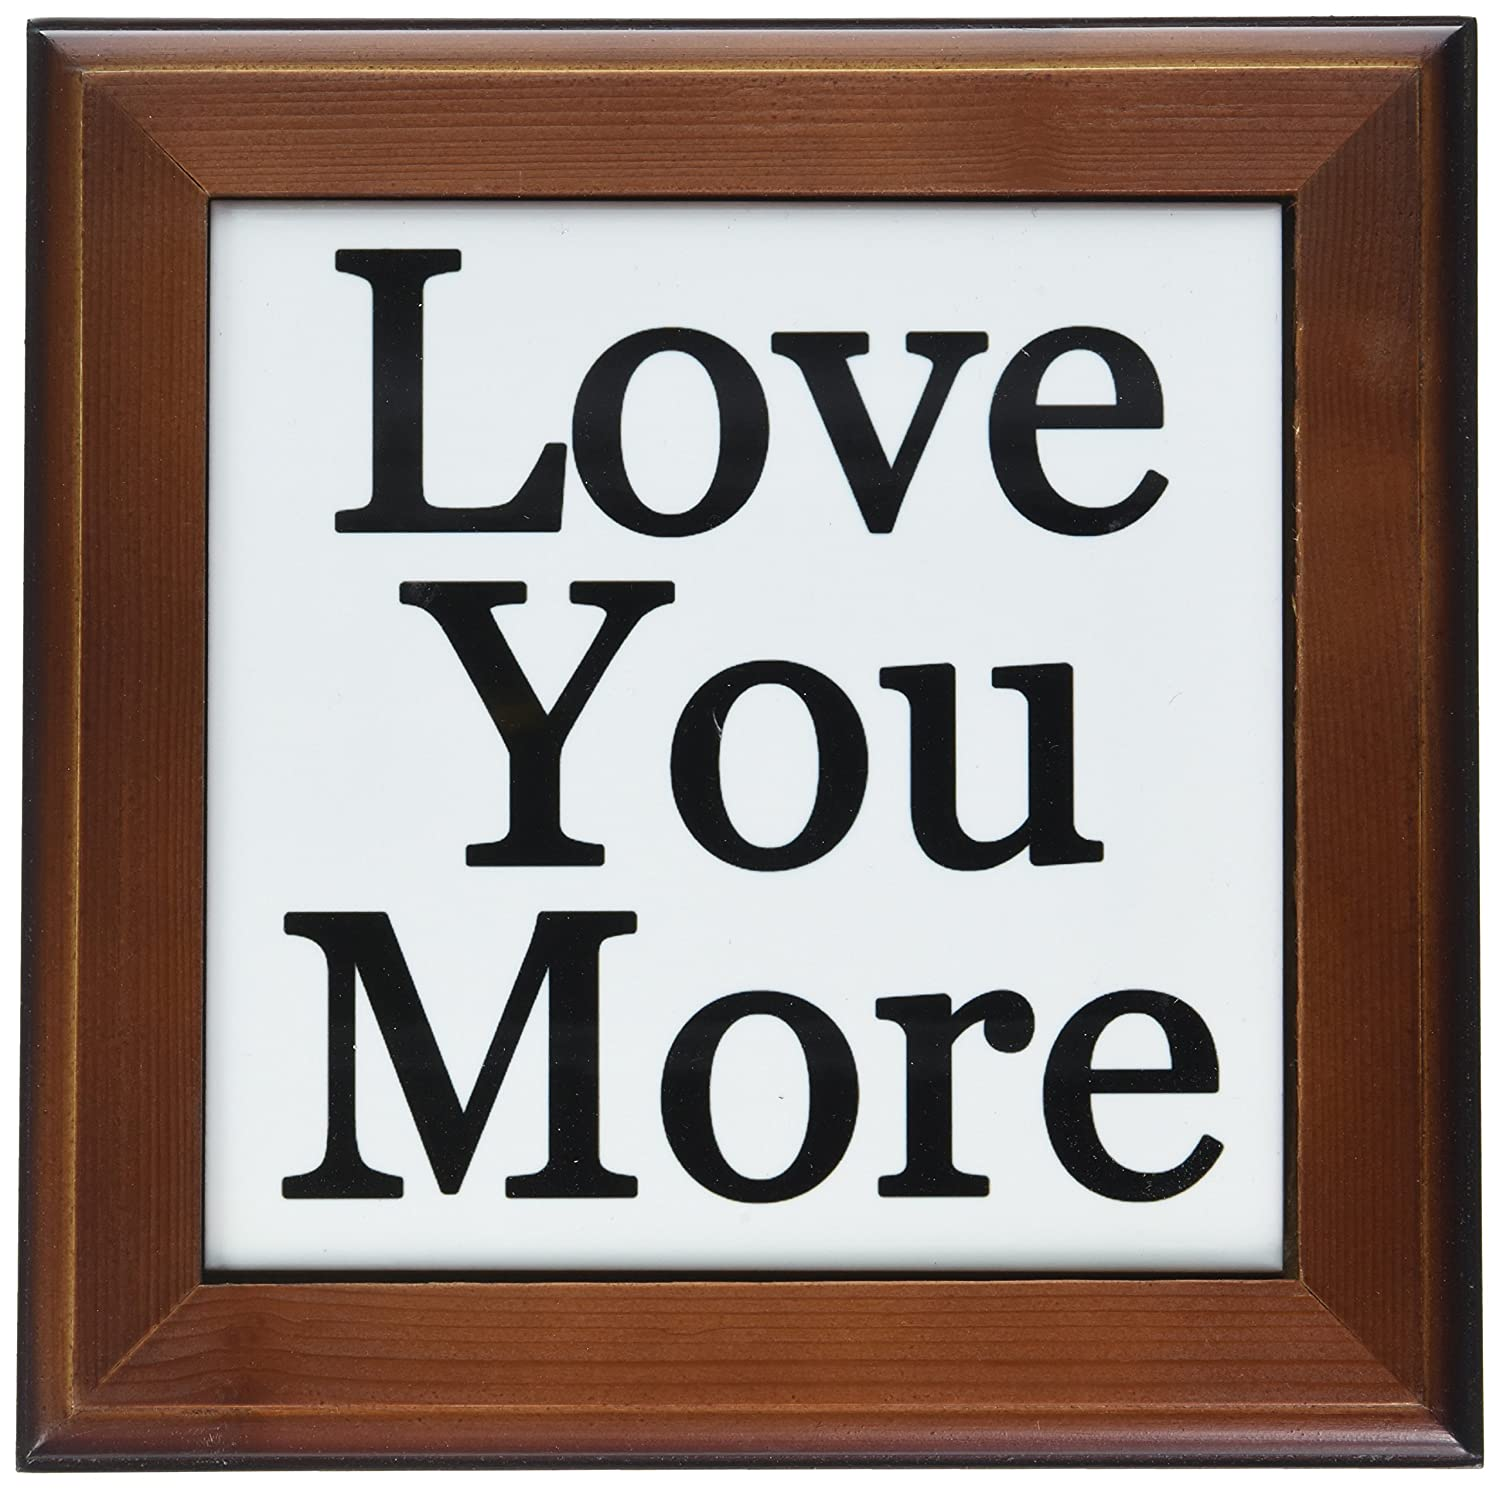 3dRose ft_193508_1 Love You More-Framed Tile Artwork, 8 by 8-Inch